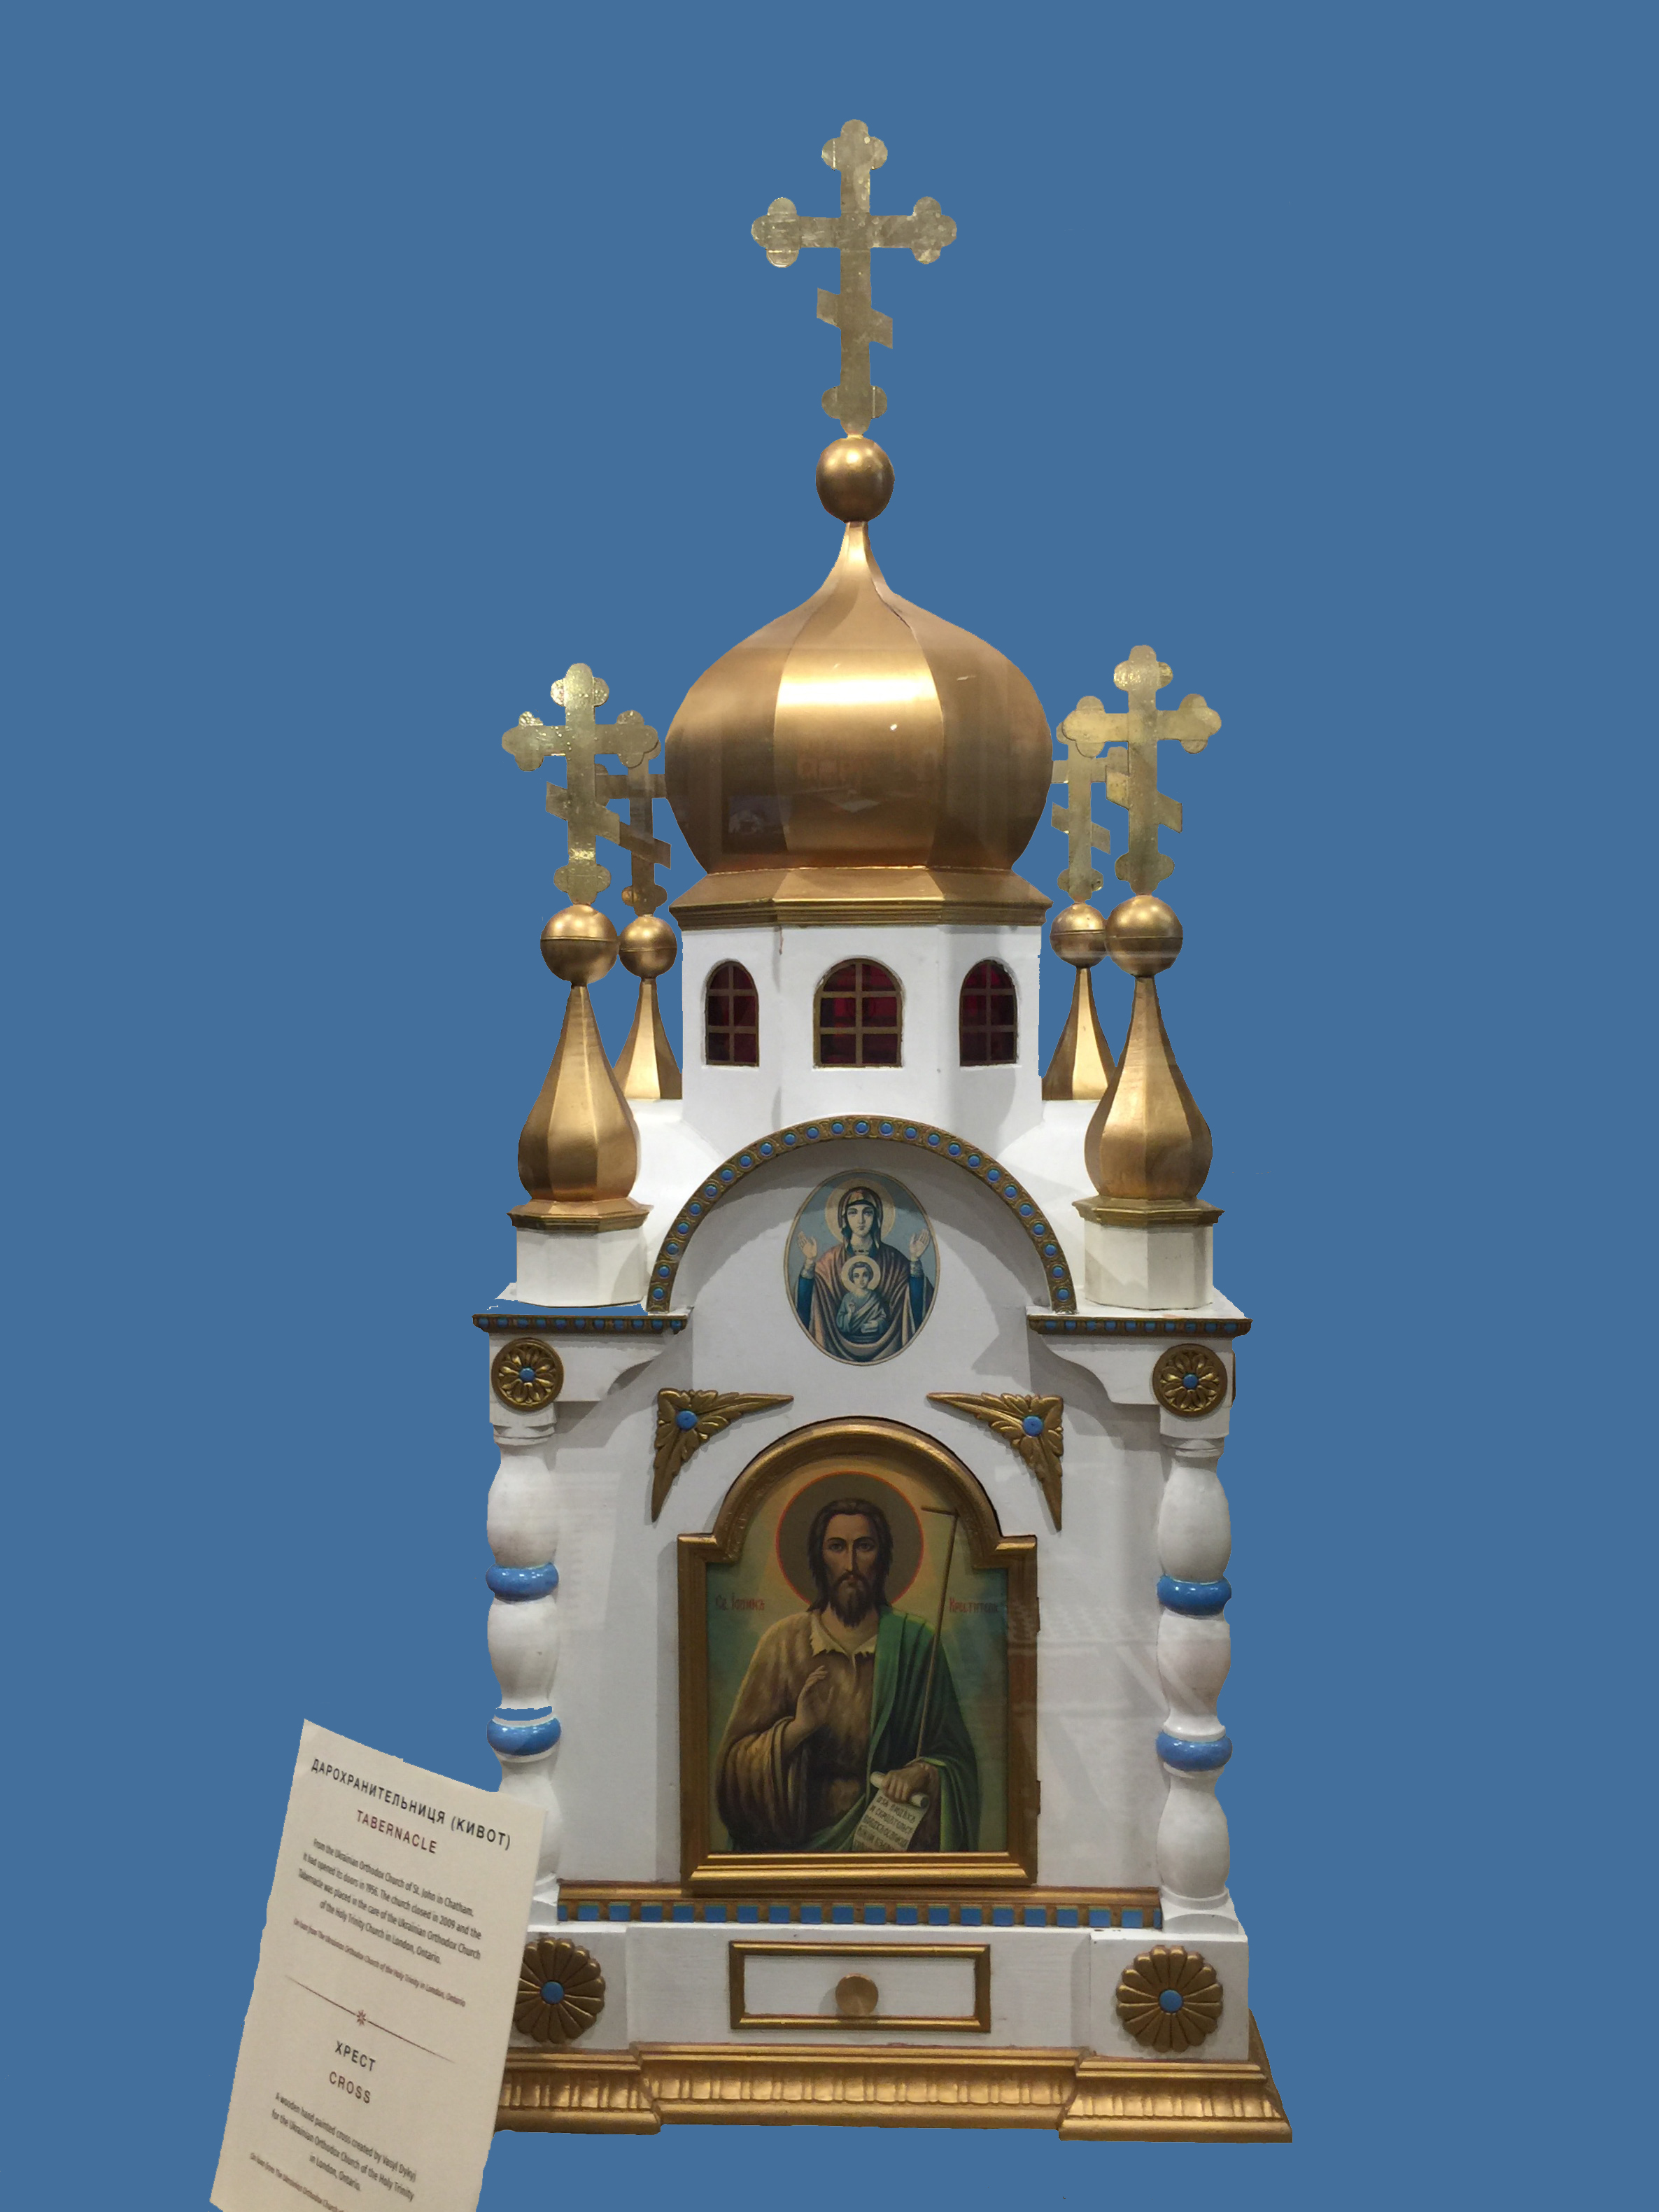 Tabernacle Дарохранительниця - The Tabernacle sits on the altar and is used as the repository for the Eucharist. This example is originally from the Ukrainian Orthodox Church of St. John in Chatham. When the church closed in 2009, this Tabernacle was placed in the care of the Ukrainian Orthodox Church of the Holy Trinity in London, Ontario.